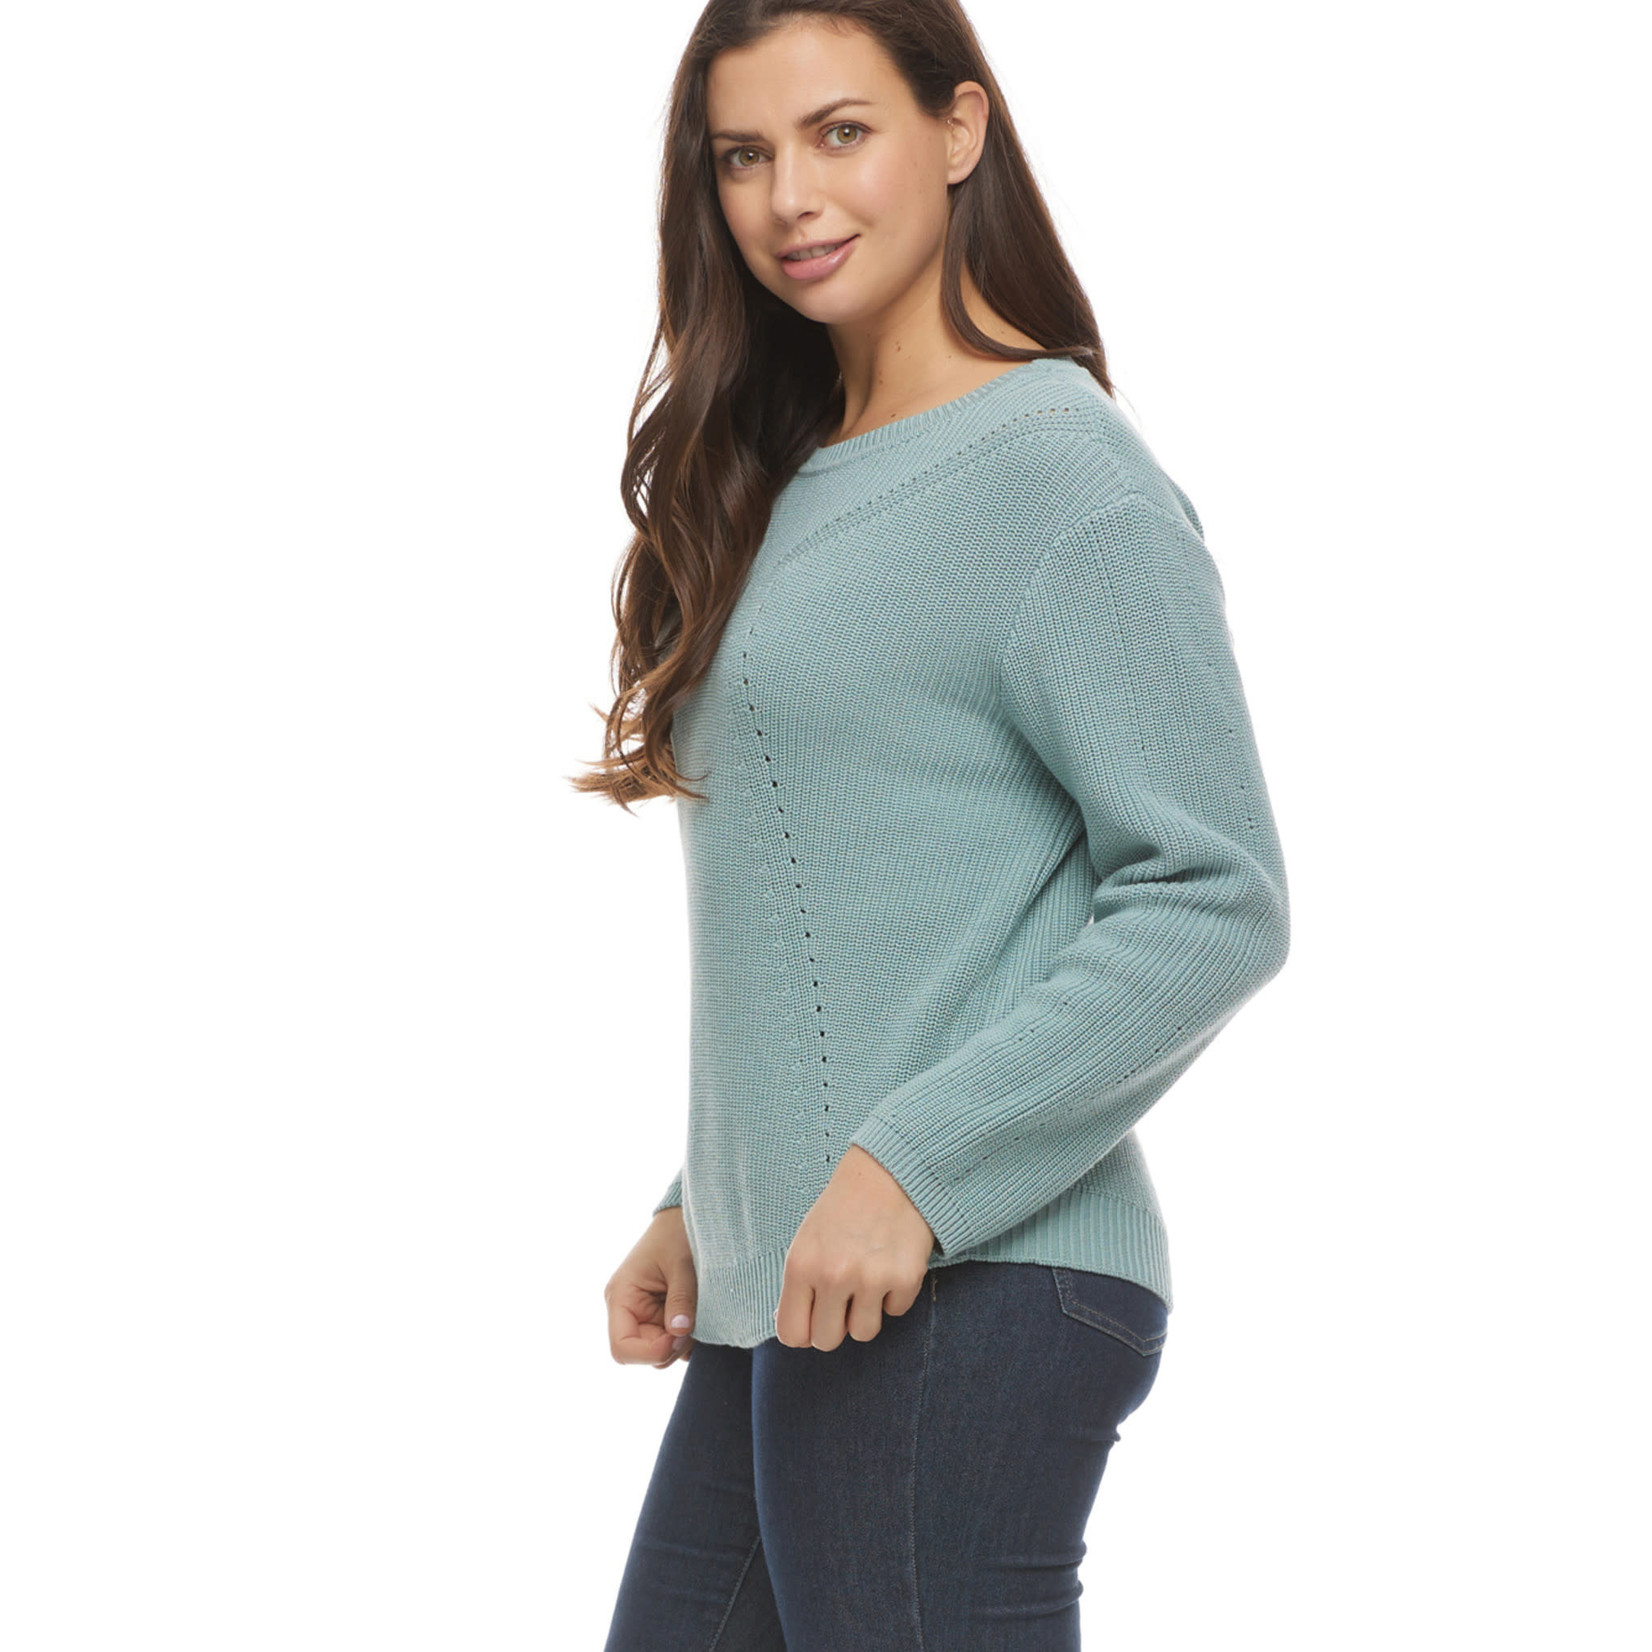 FDJ Shaker Stitch Boat Neck Sweater in Teal